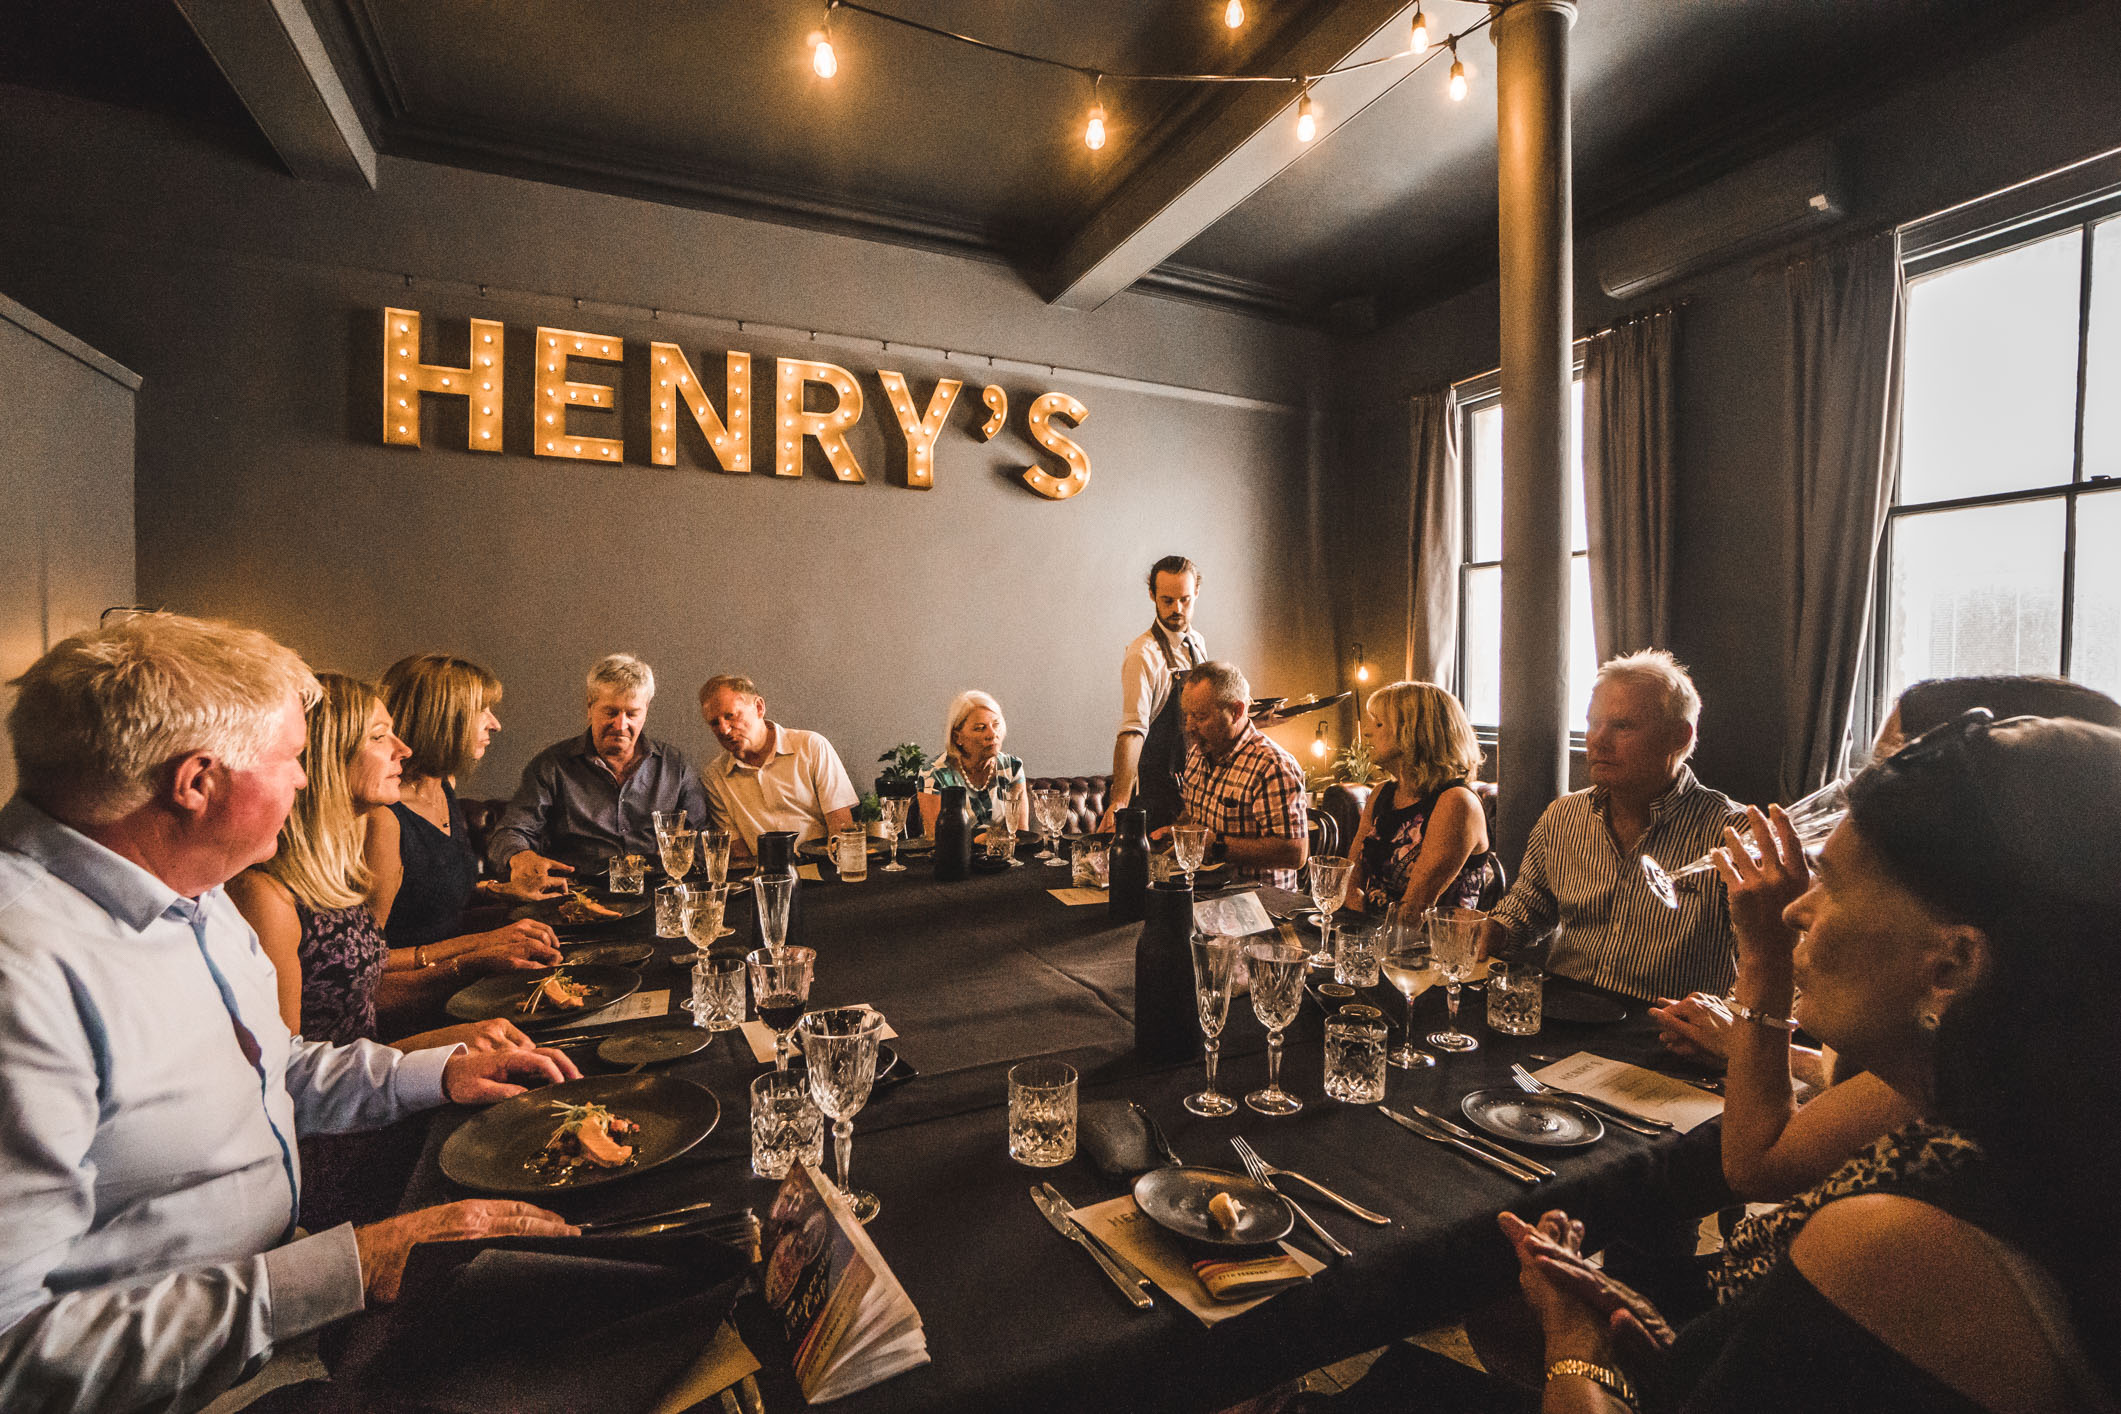 Henrys (Web) (5 of 10).jpg